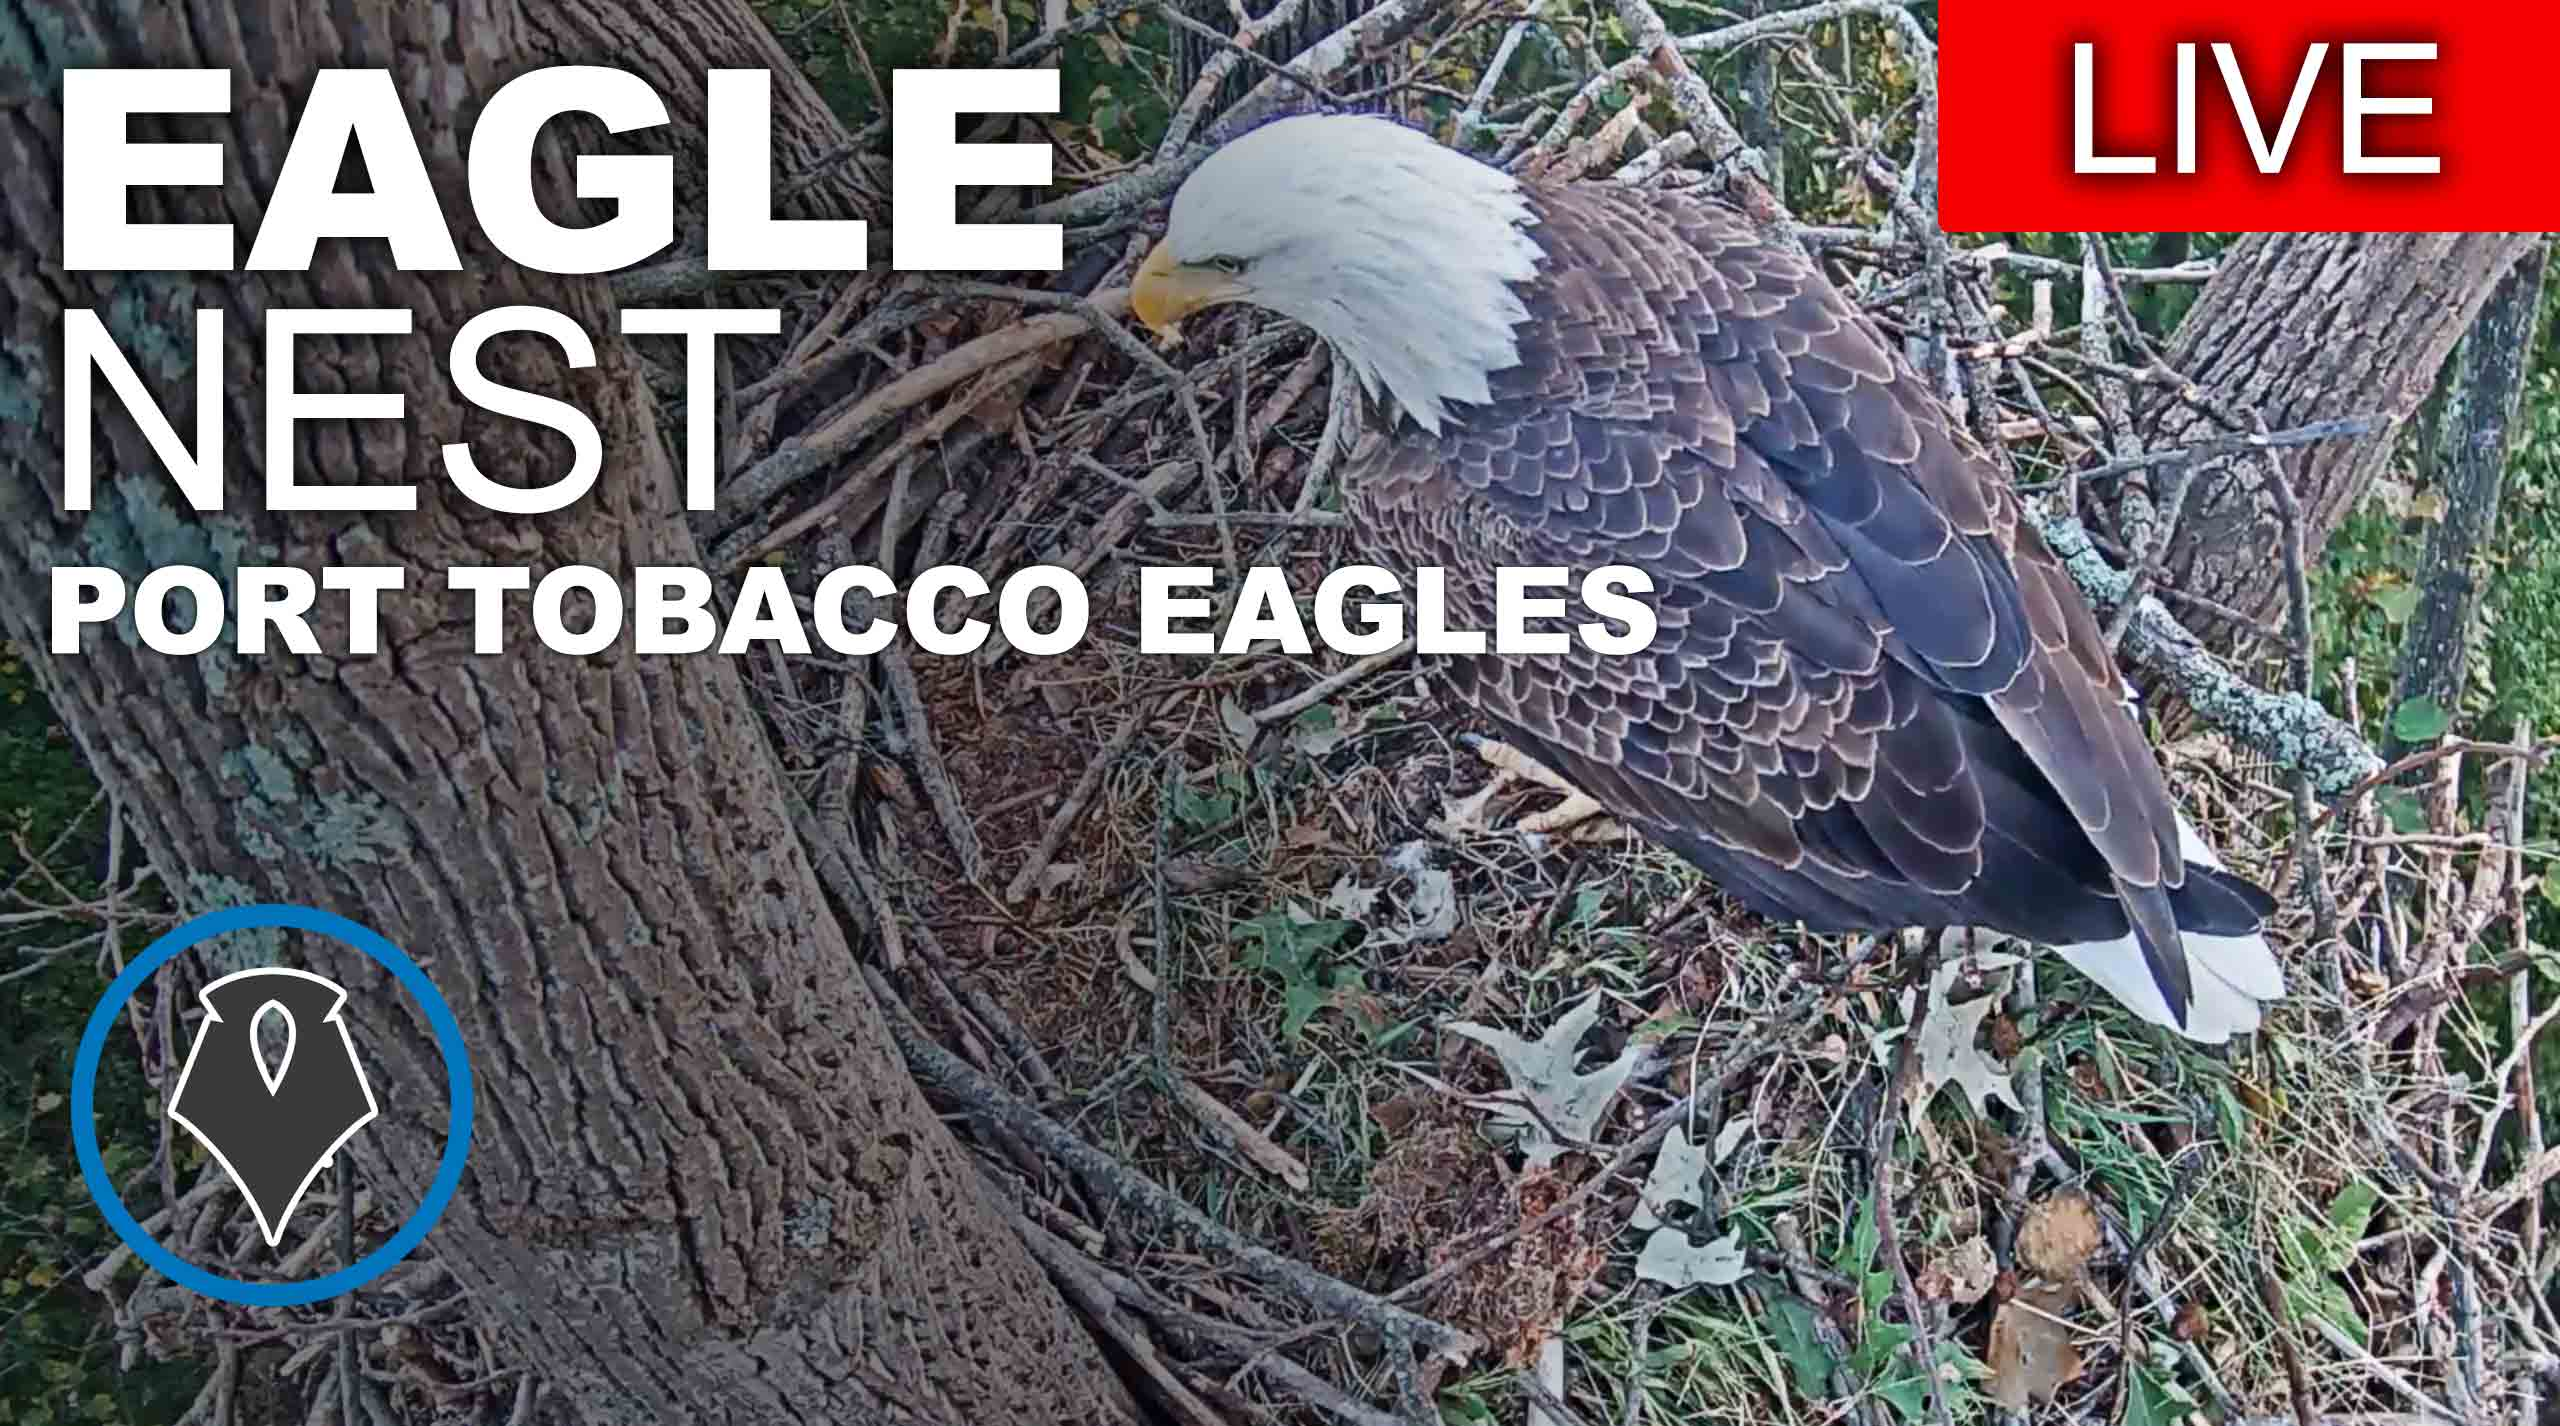 Port Tobacco Eagles